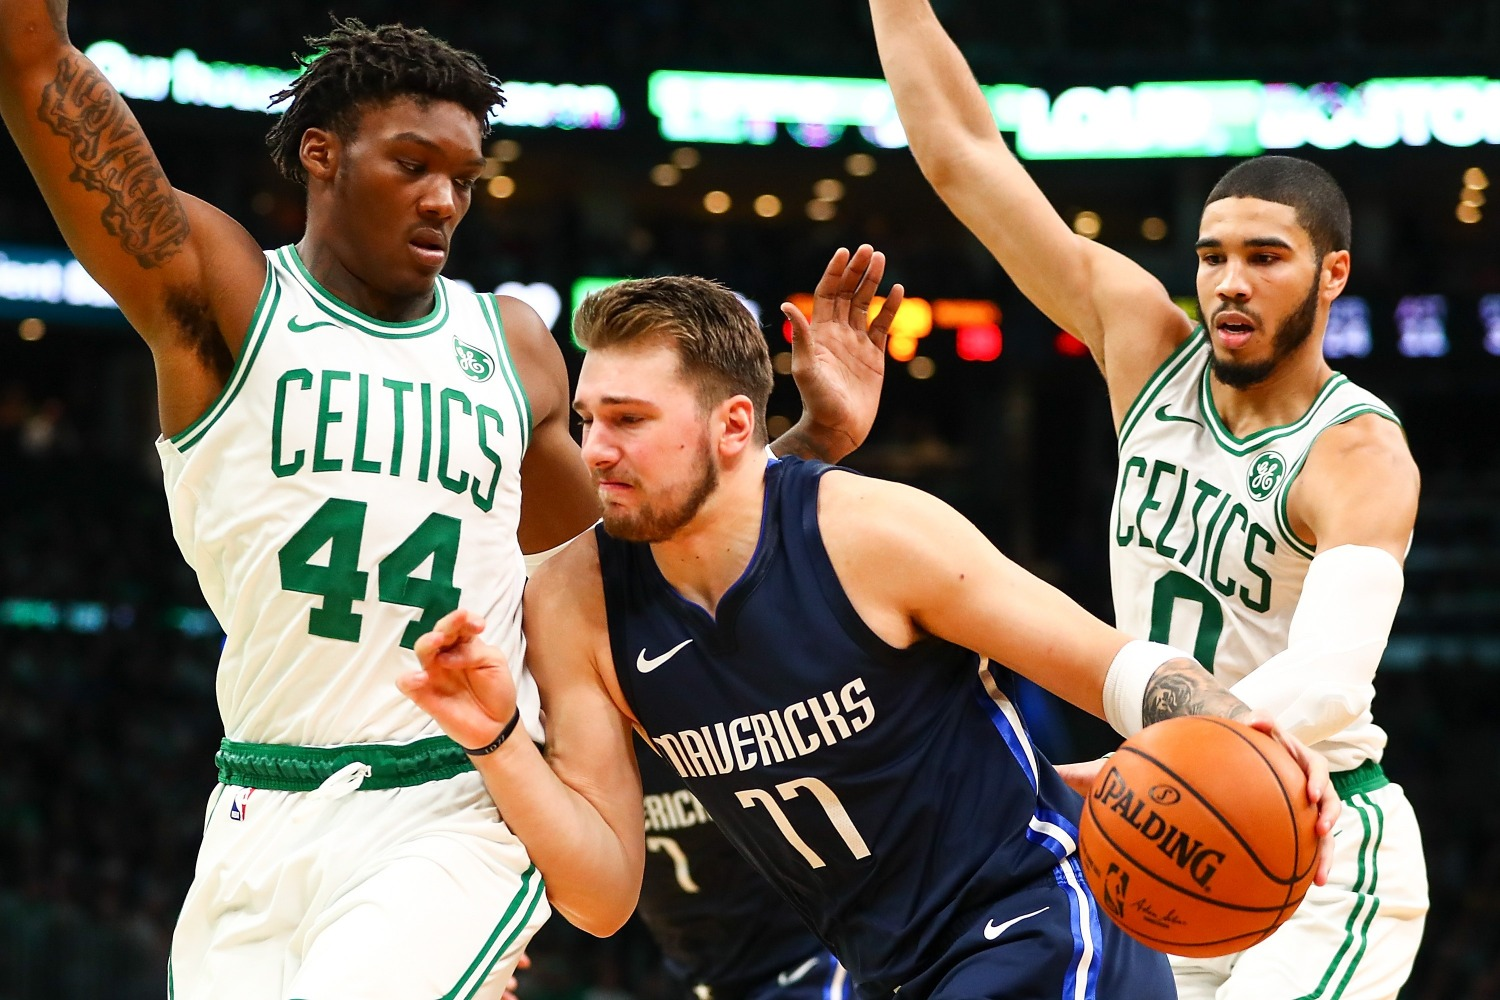 Jayson Tatum and Jaylen Brown are already stars, but the Boston Celtics have another budding star in 22-year-old center Robert Williams.